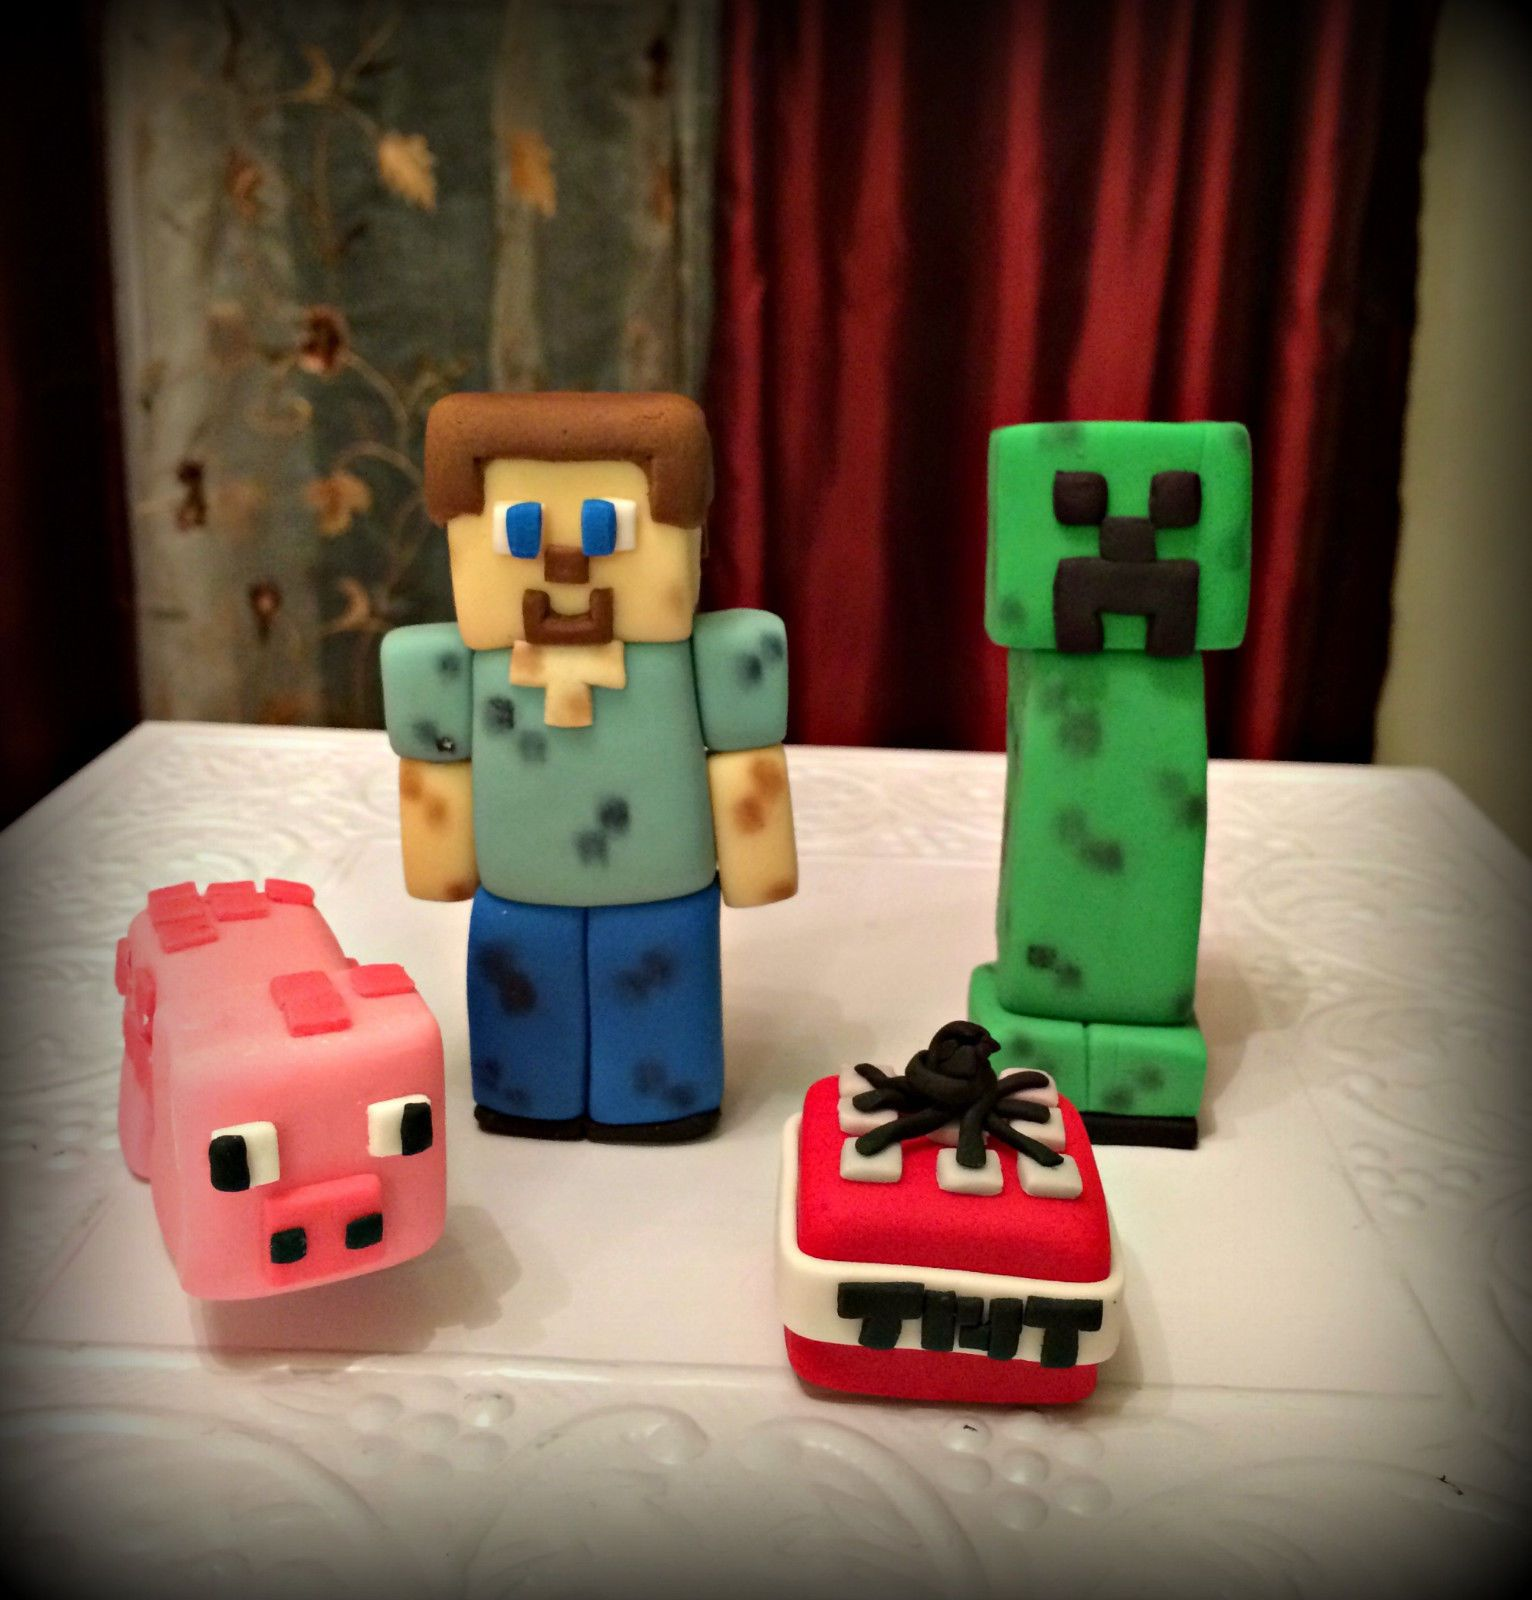 Set 4 Minecraft Inspired Fondant Cake Toppers eBay DIY ...